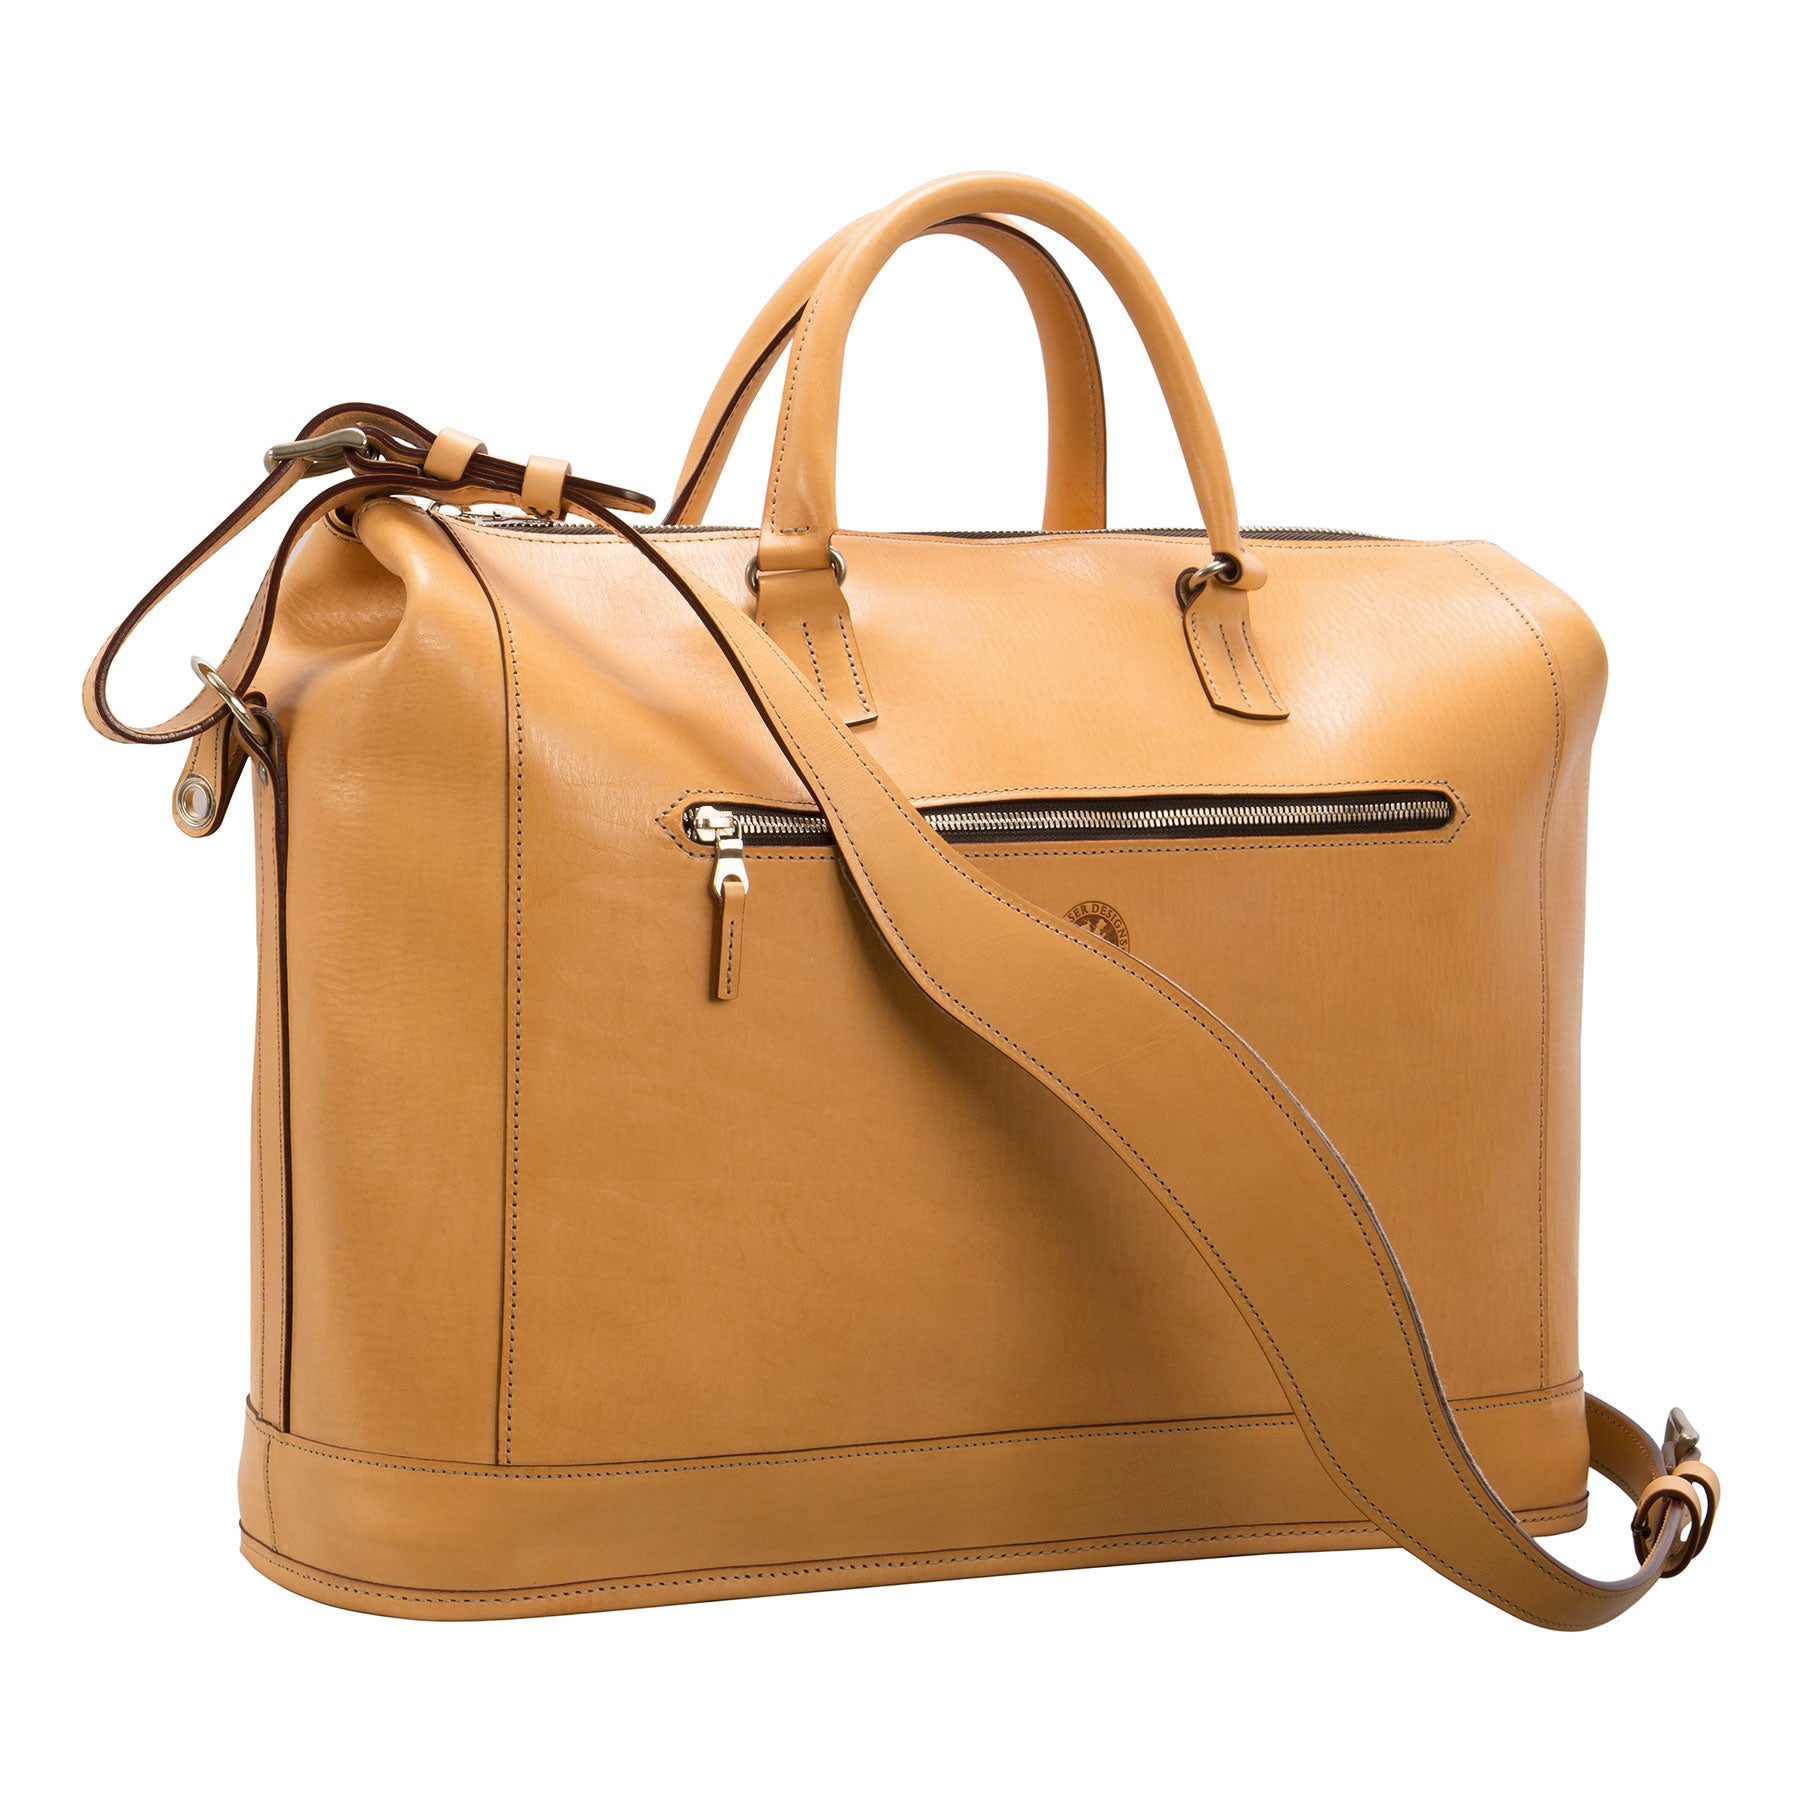 Pedestal Club Bag: hand-burnished leather